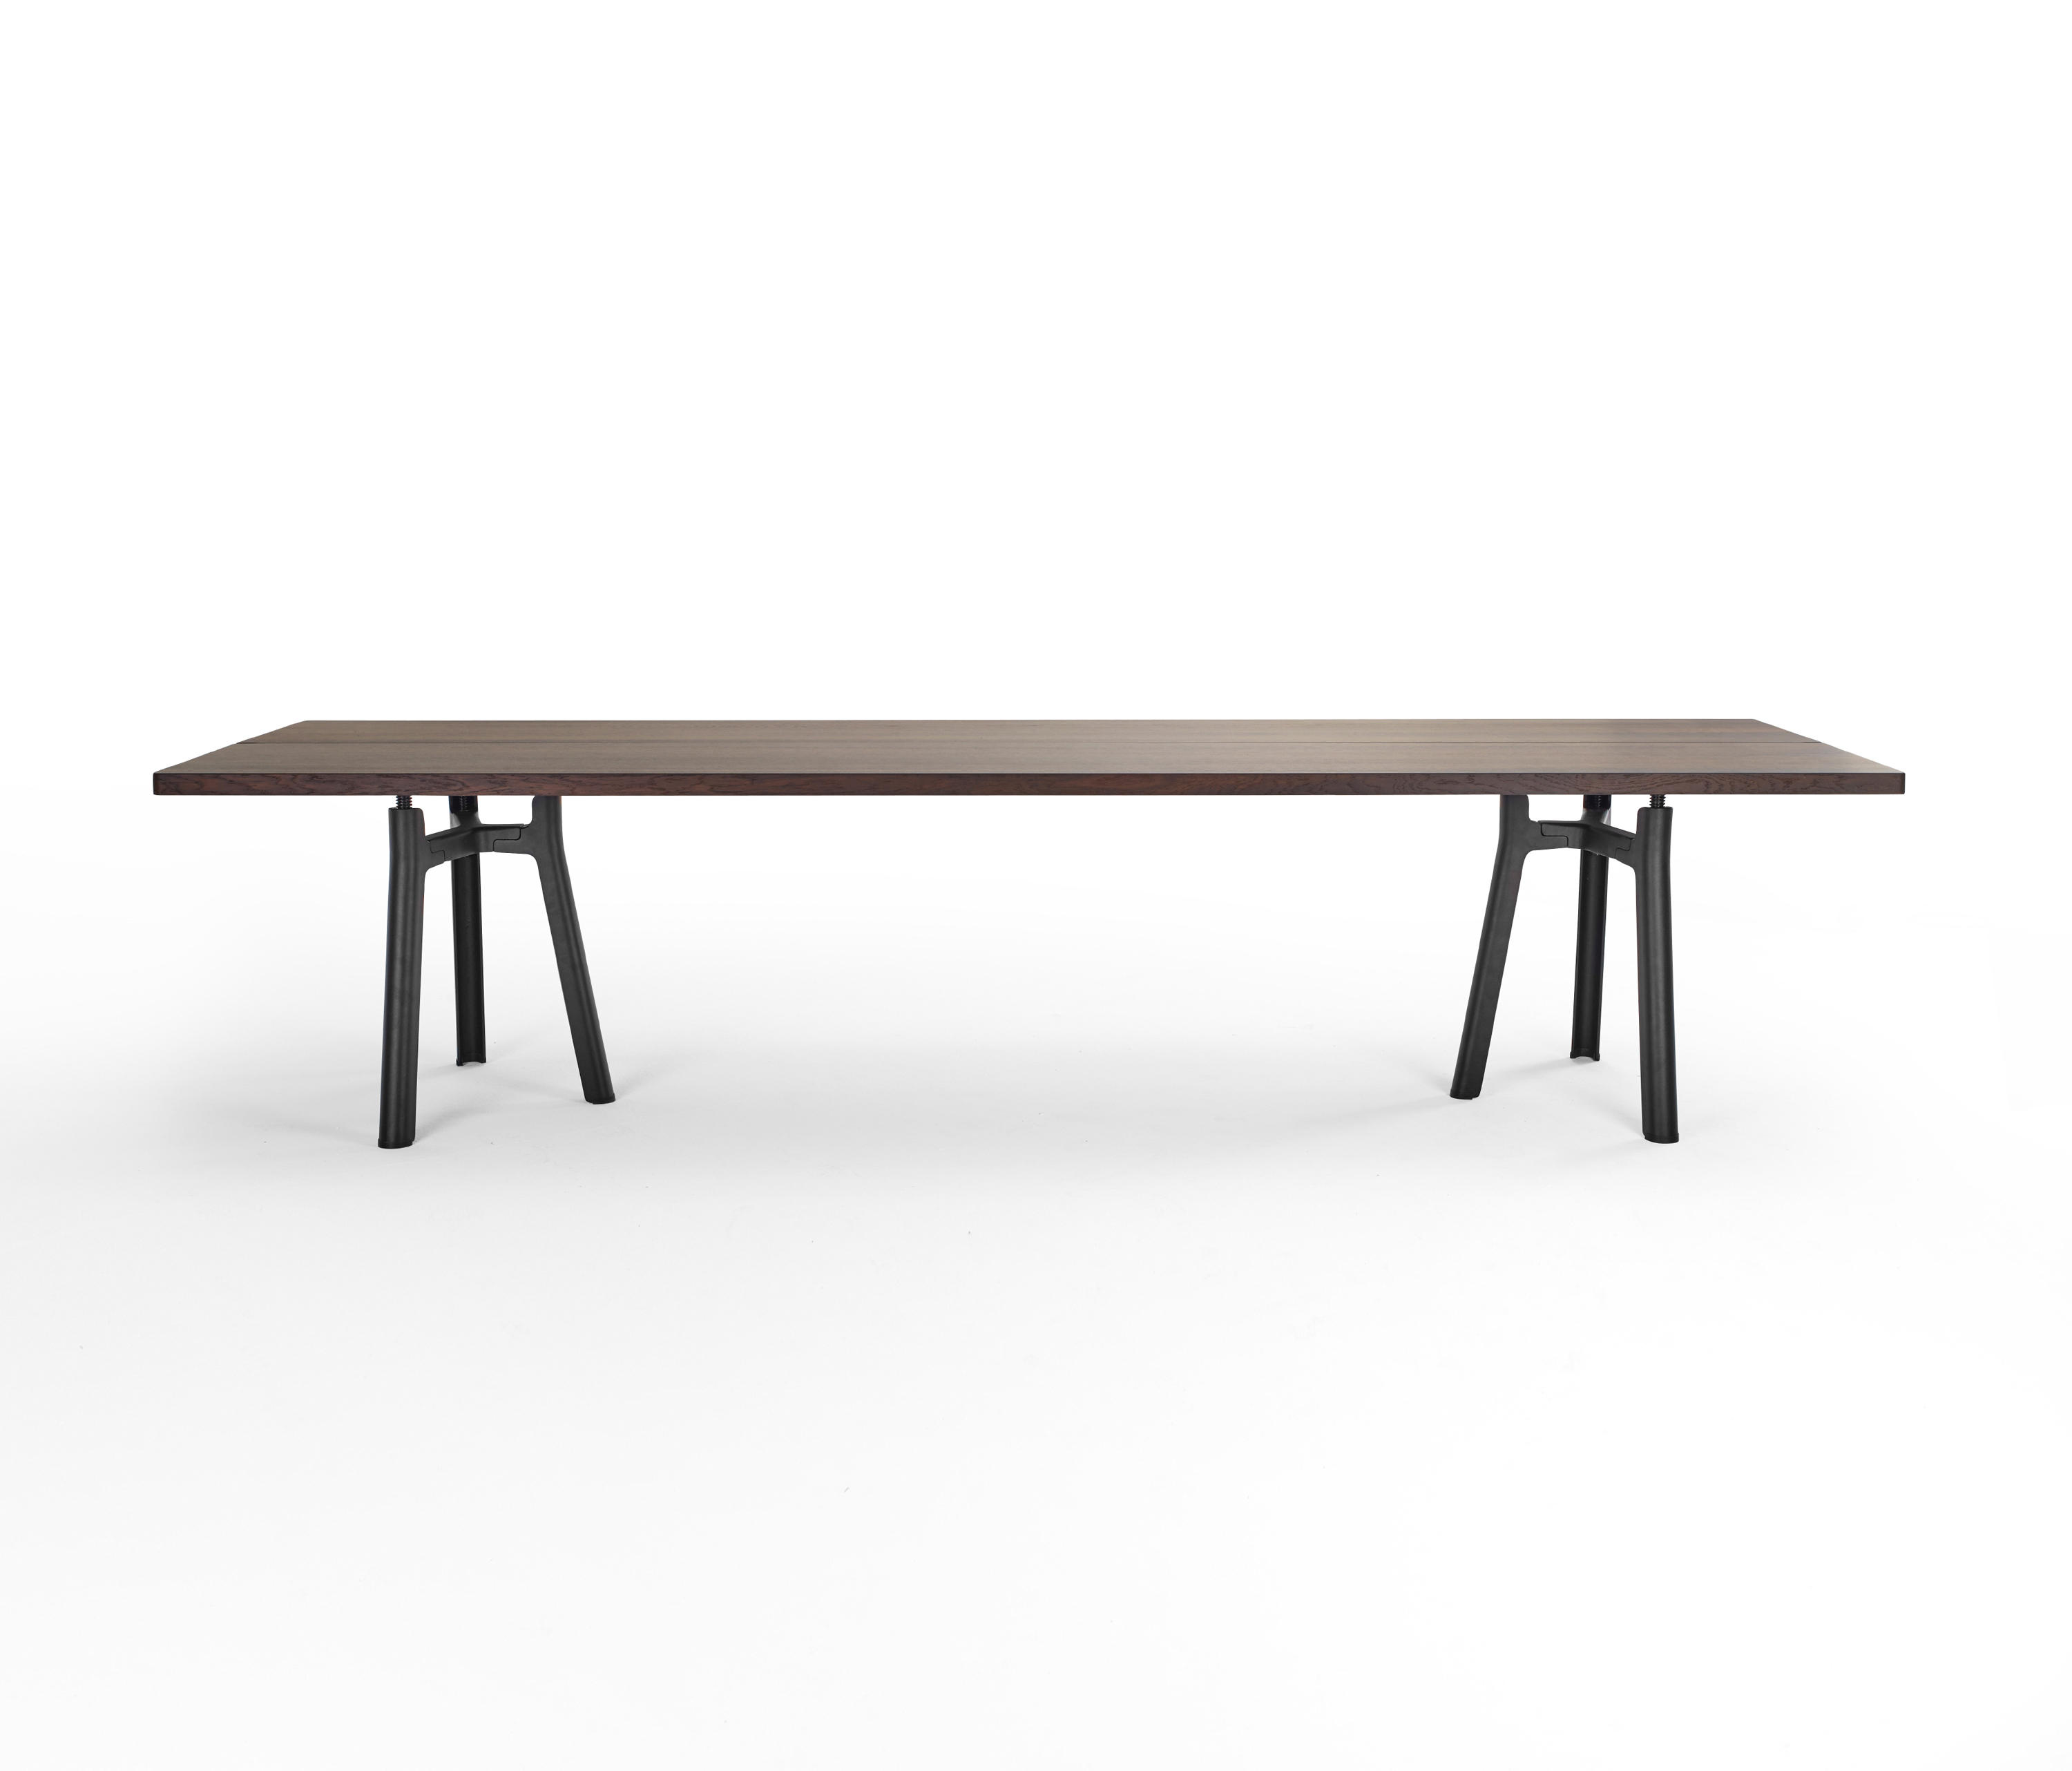 Table Traiteau Table Traiteau Trestle Table De Arco Trteaux With Table